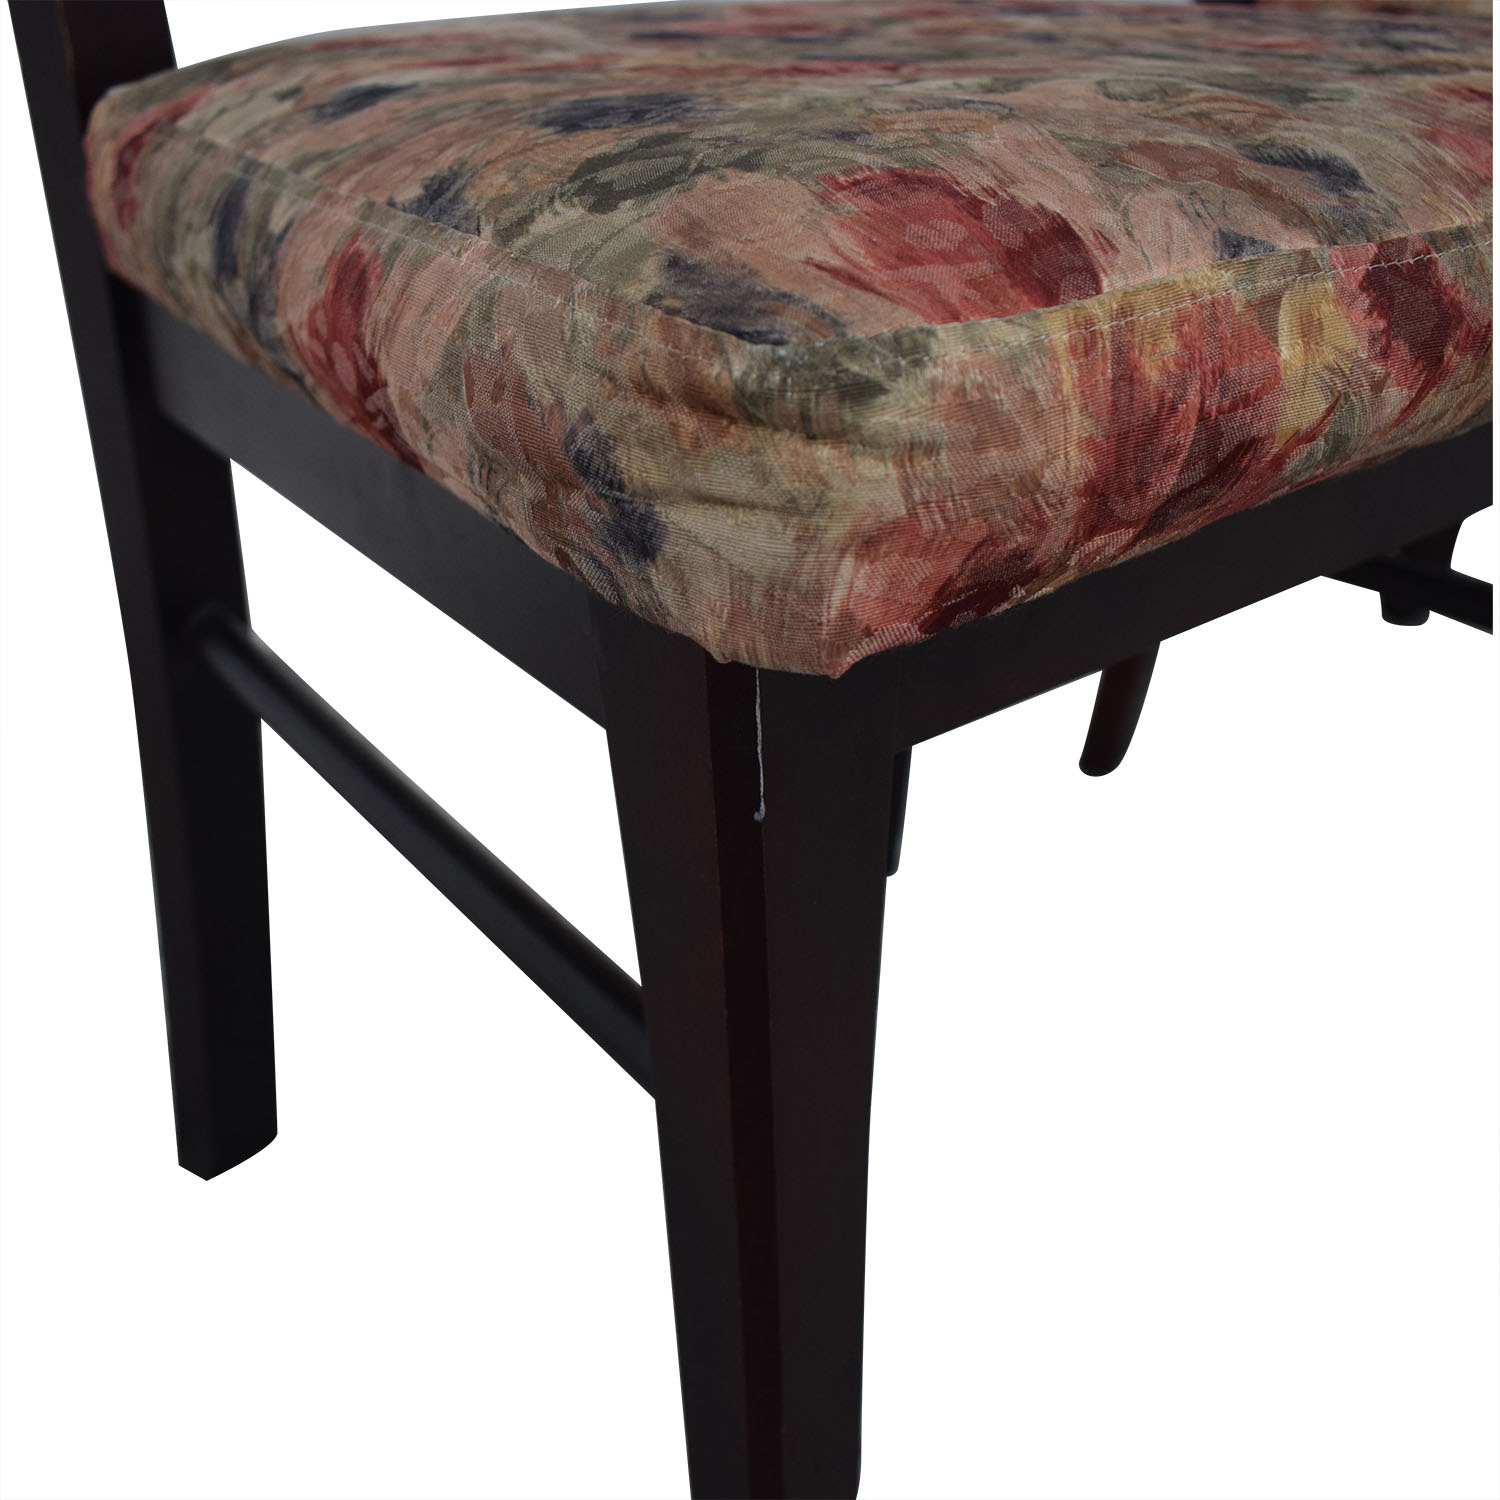 Canadel Floral Upholstered Dining Chairs / Chairs